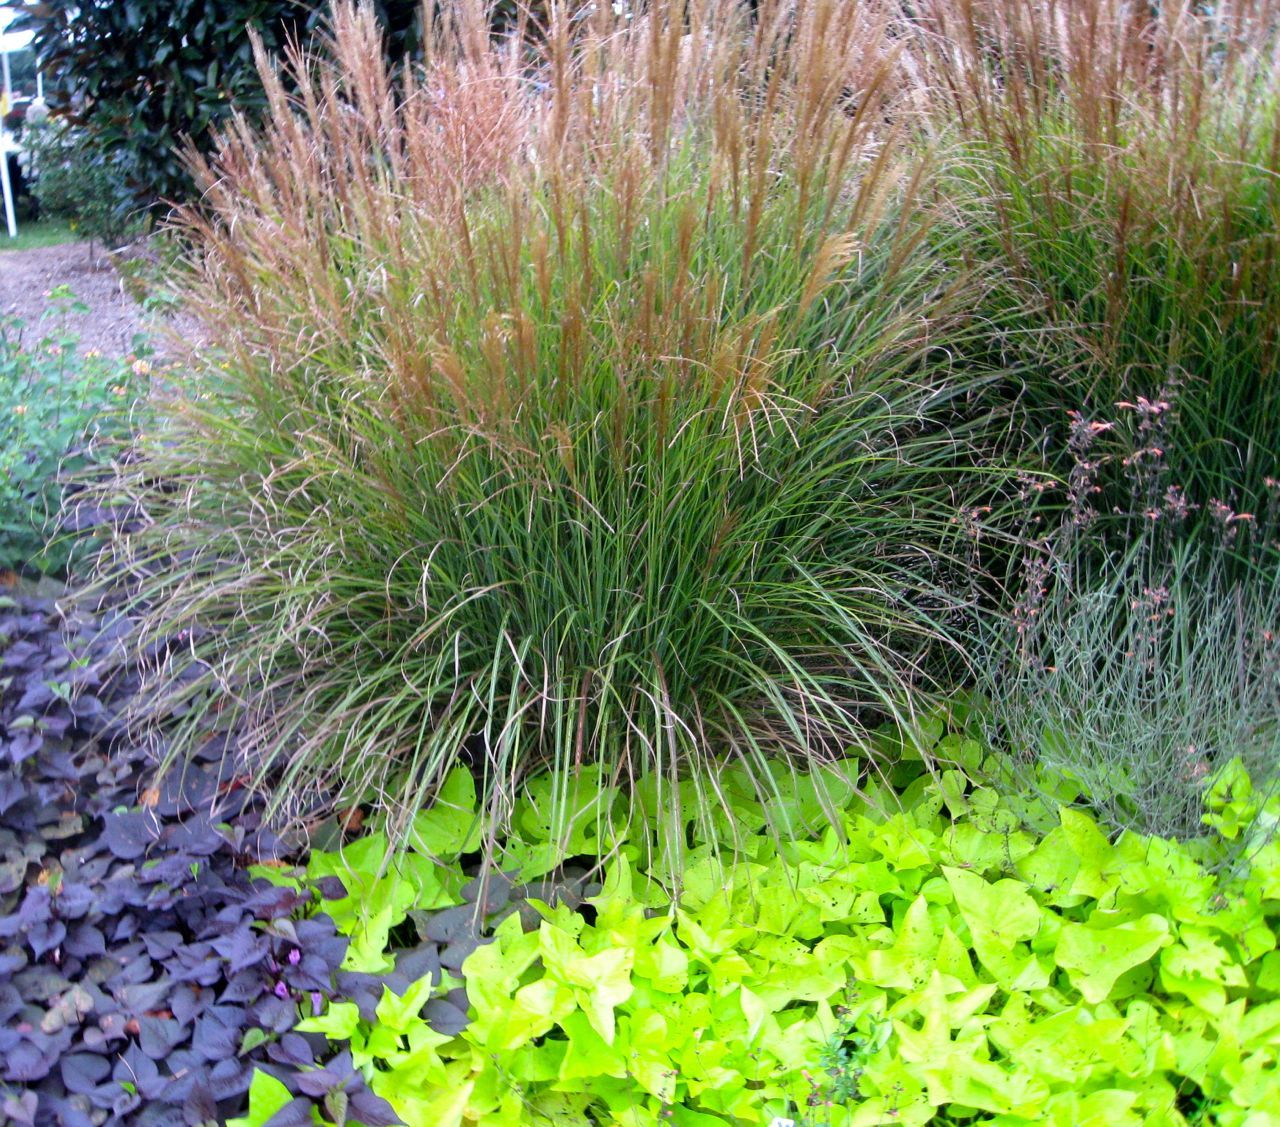 Ornamental grasses ornamental grass and sweet potato vine ornamental grasses ornamental grass and sweet potato vine workwithnaturefo